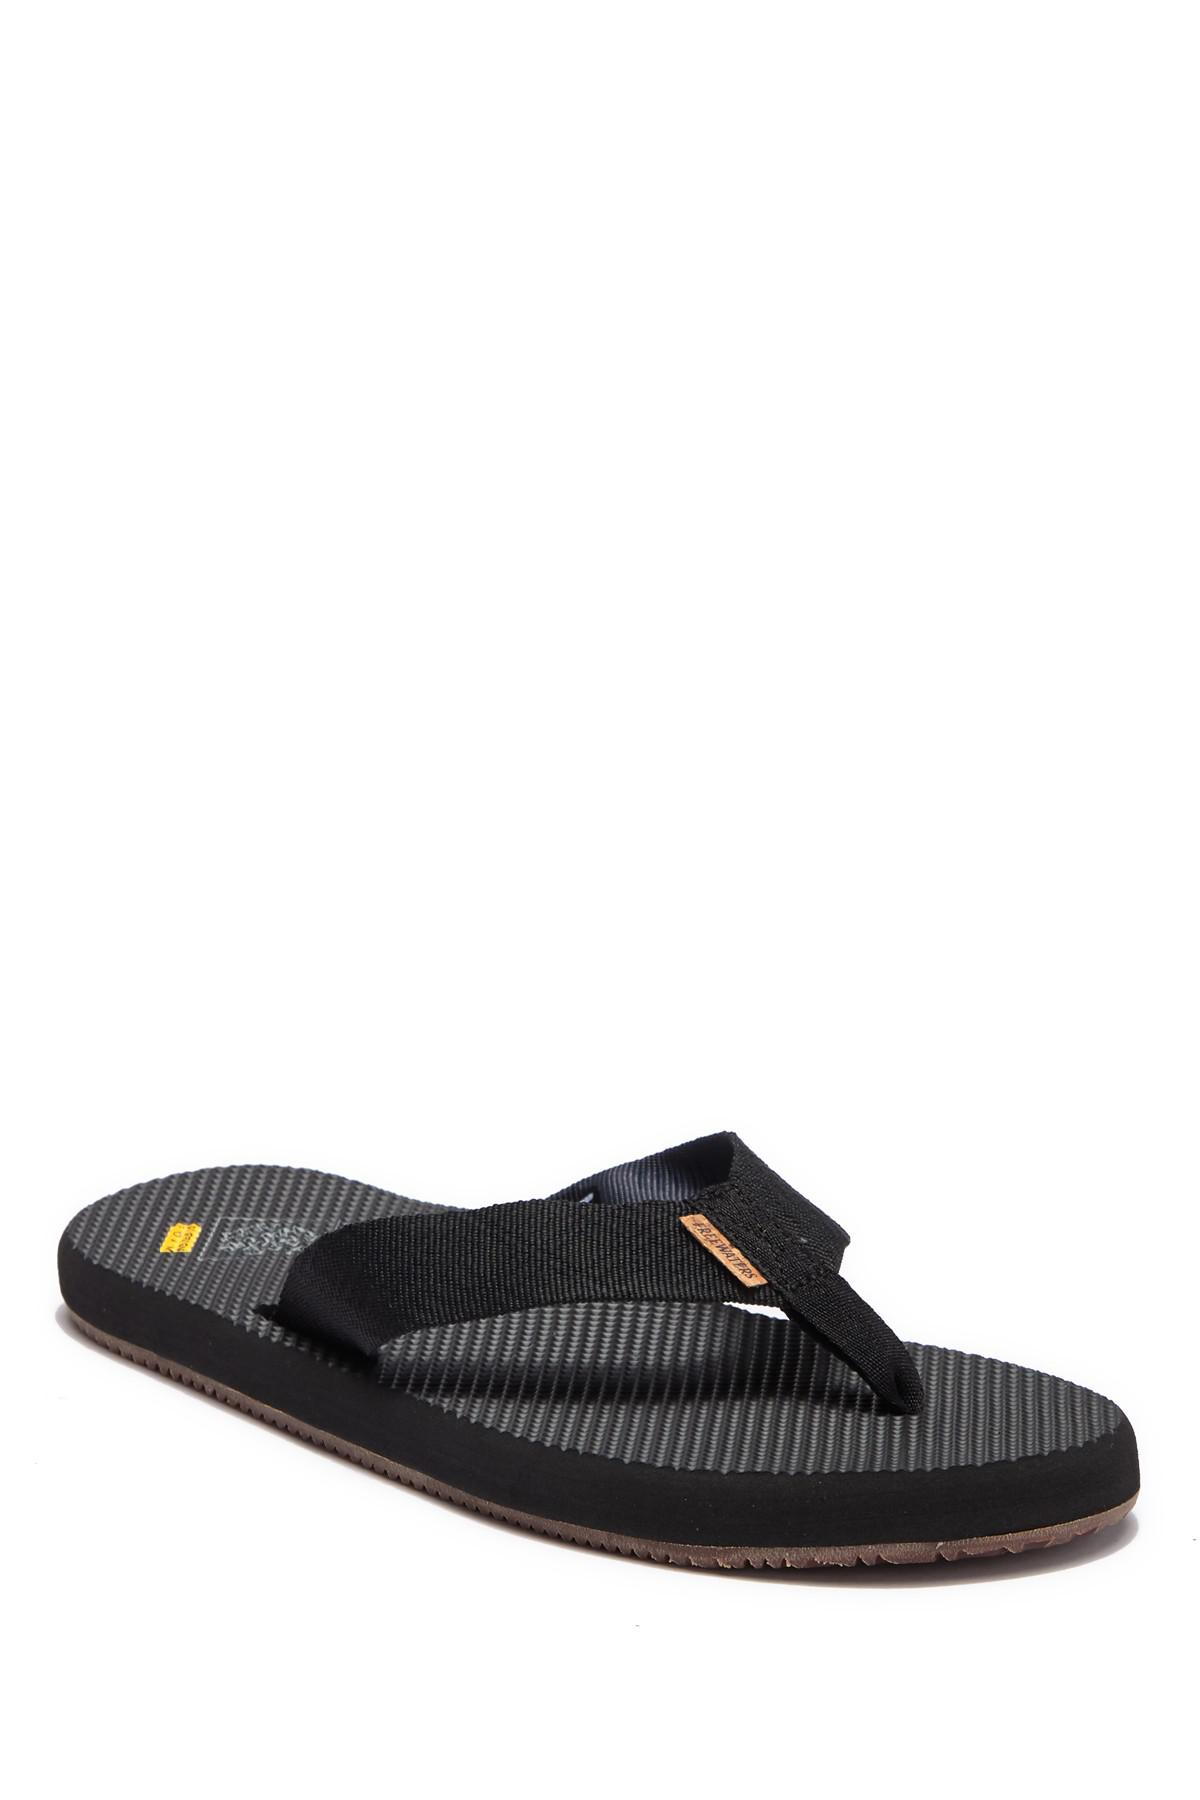 f4998c1b55e Lyst - Freewaters Supreem Slip-on Flip-flop in Black for Men - Save 14%